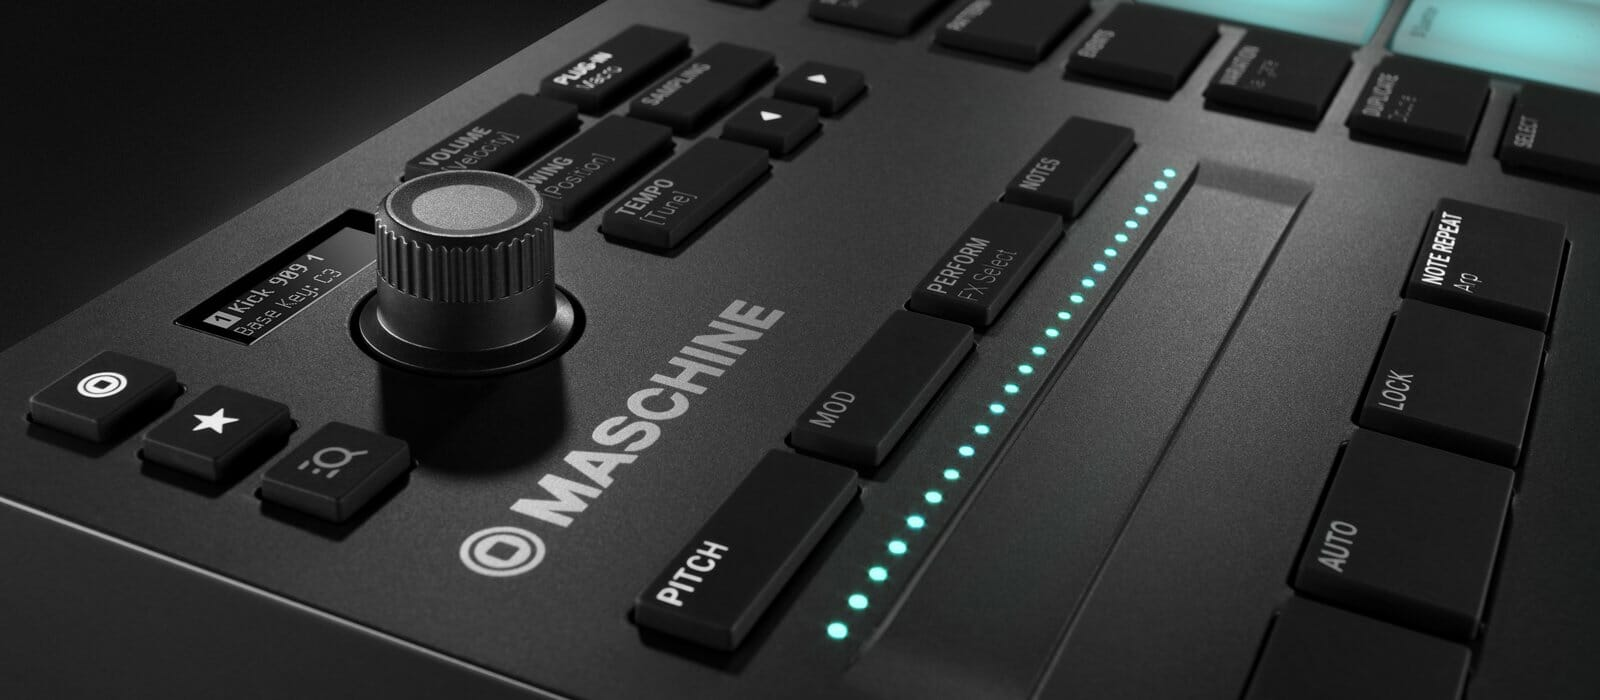 img-ce-gallery-maschine-mikro-mk3_overview_04_gallery-06-cc6ad35f41361d372bbbc1d4c994b8f7-d